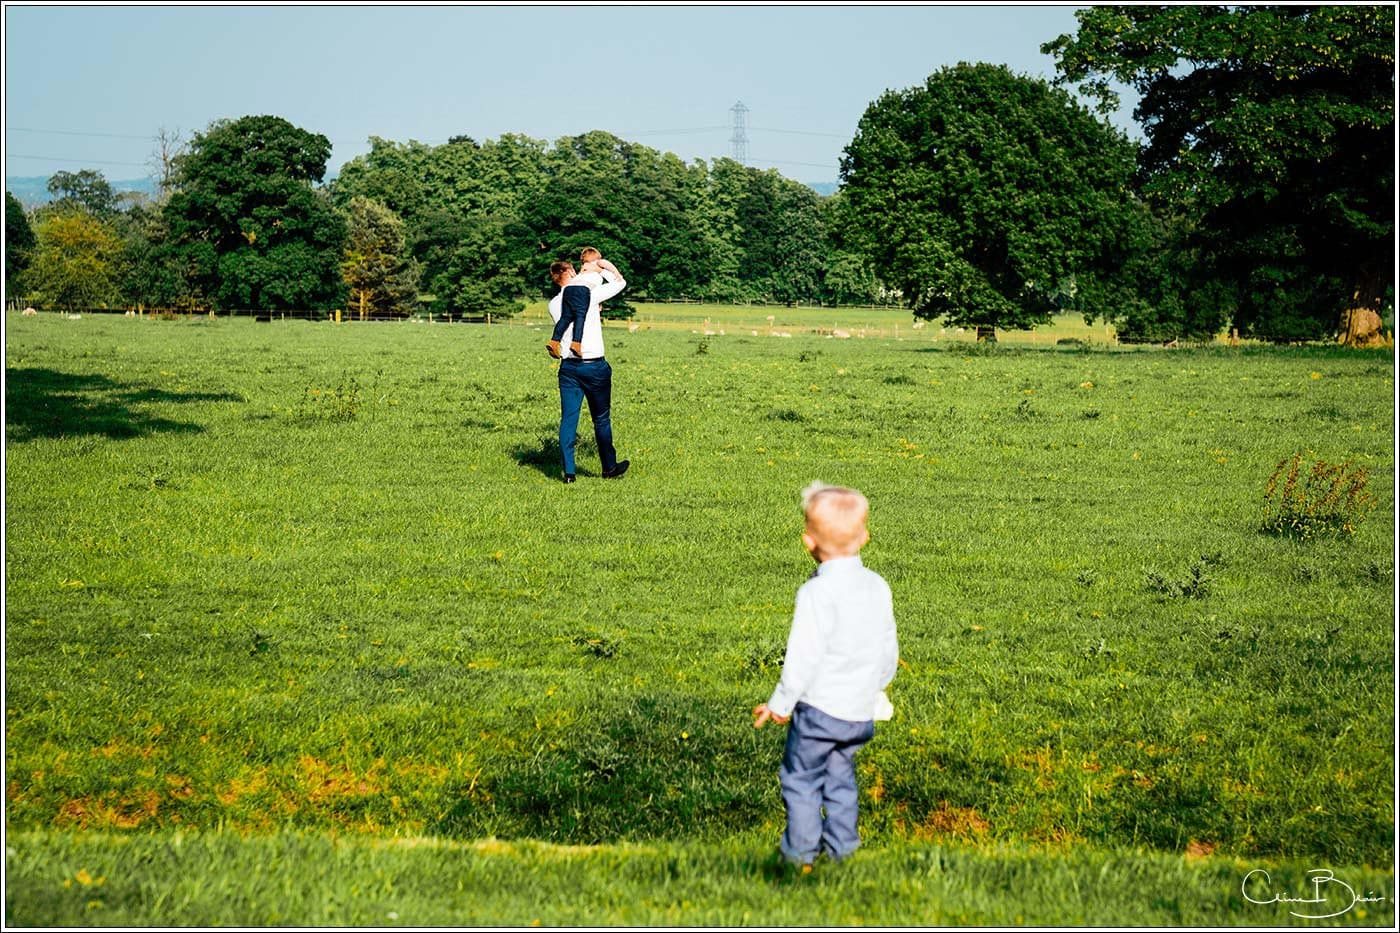 Child watching guest taking another child into a field of cows at Pendrell Hall as photographed by a recommended Pendrell Hall photographer